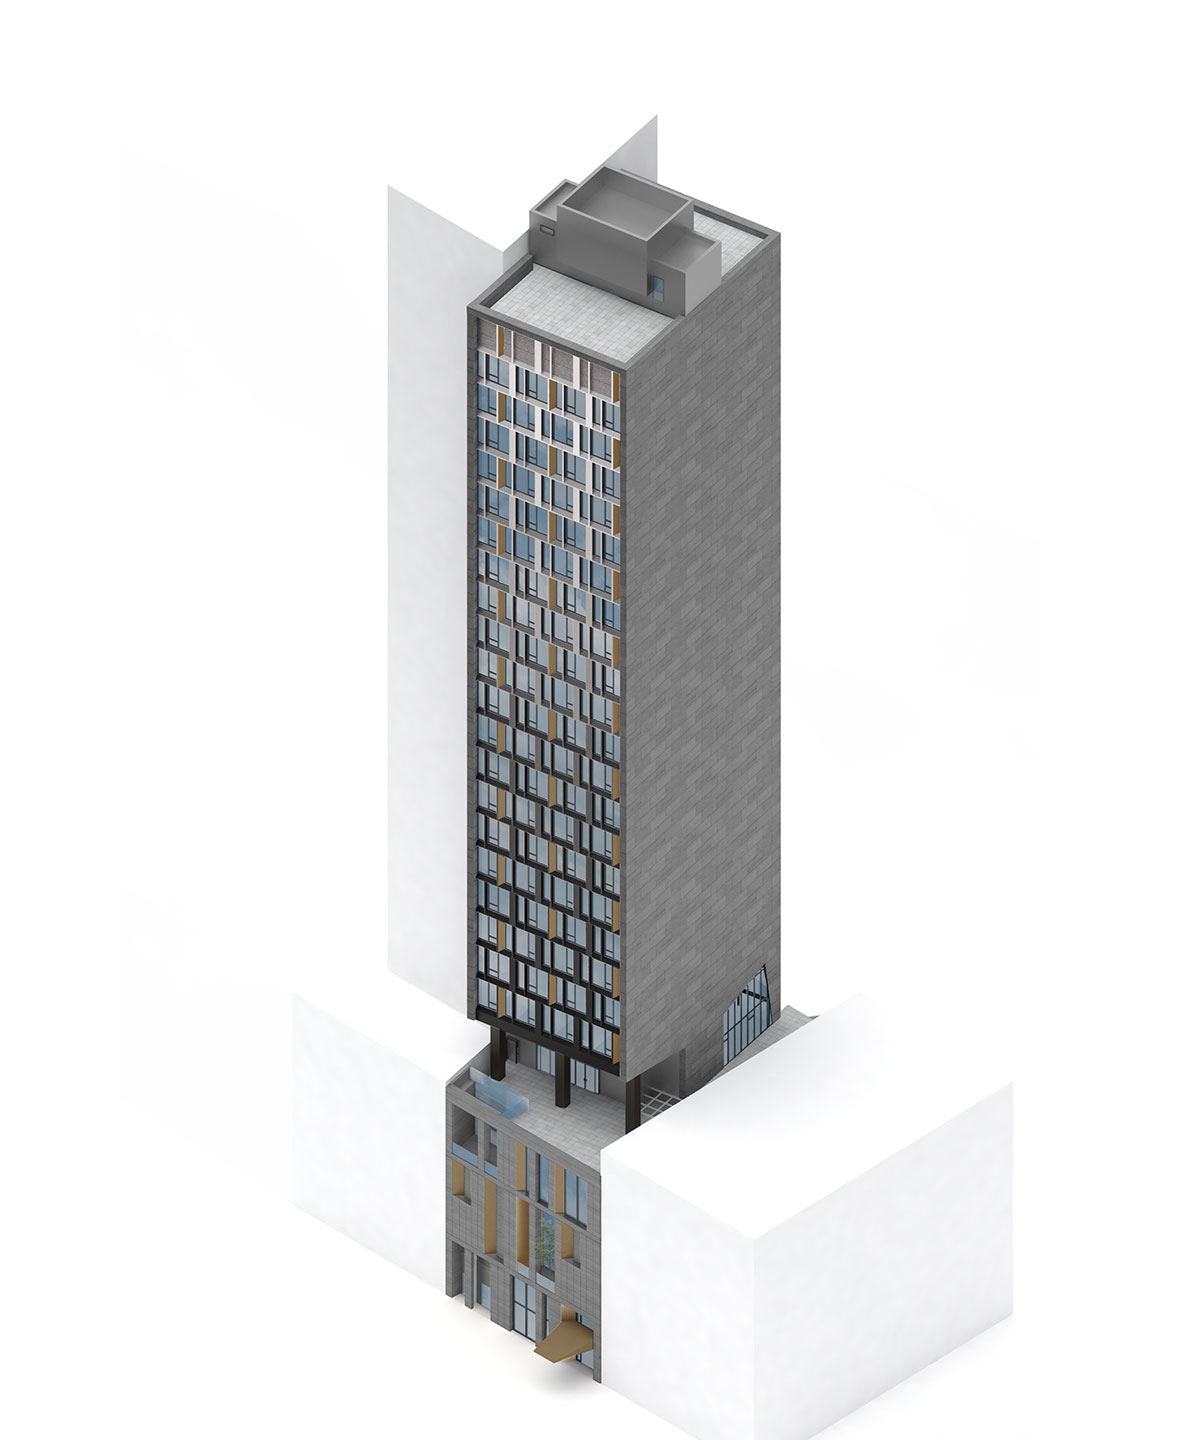 Axonometric view of the Modular AC Hotel project located at 842 Sixth Avenue in NoMad, New York City designed by the architecture studio Danny Forster & Architecture